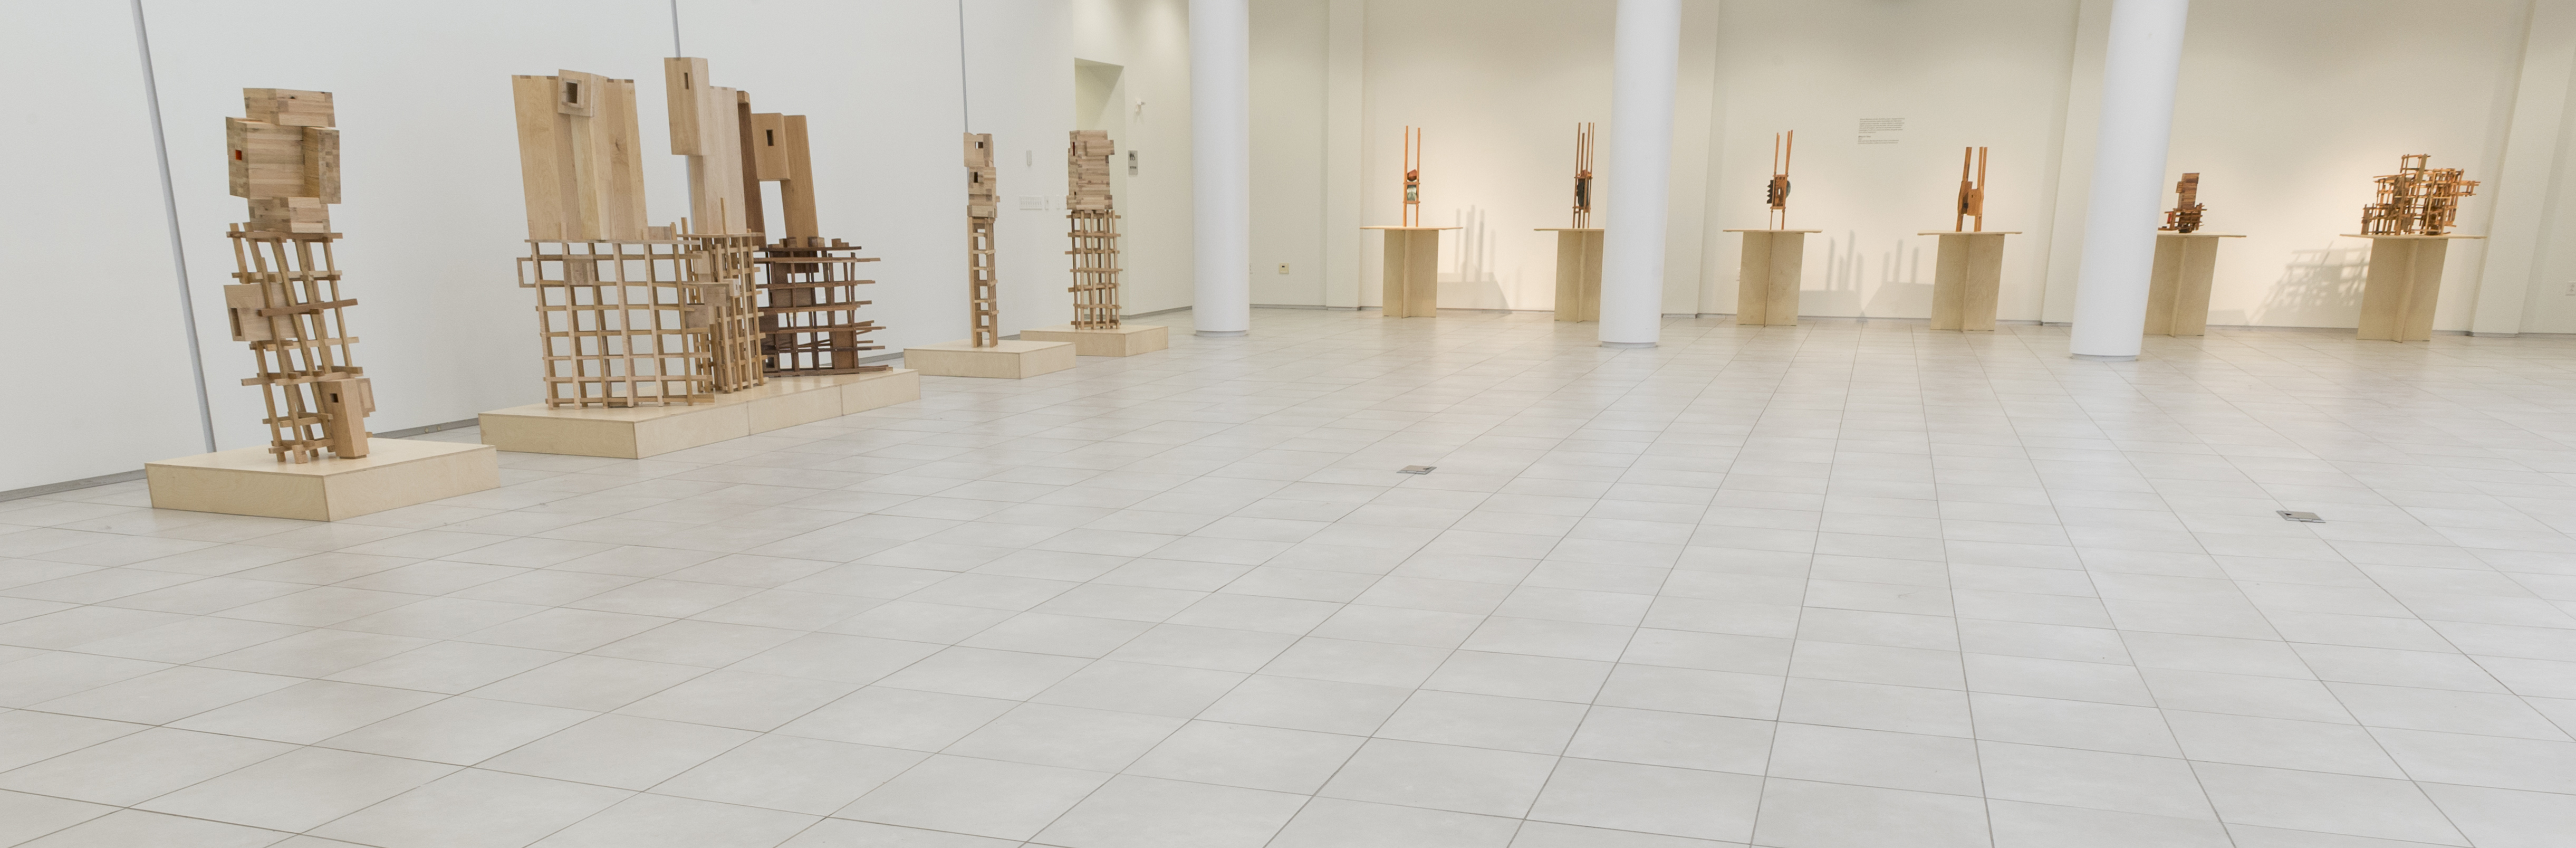 Panoramic view across gallery of series of wooden sculptures